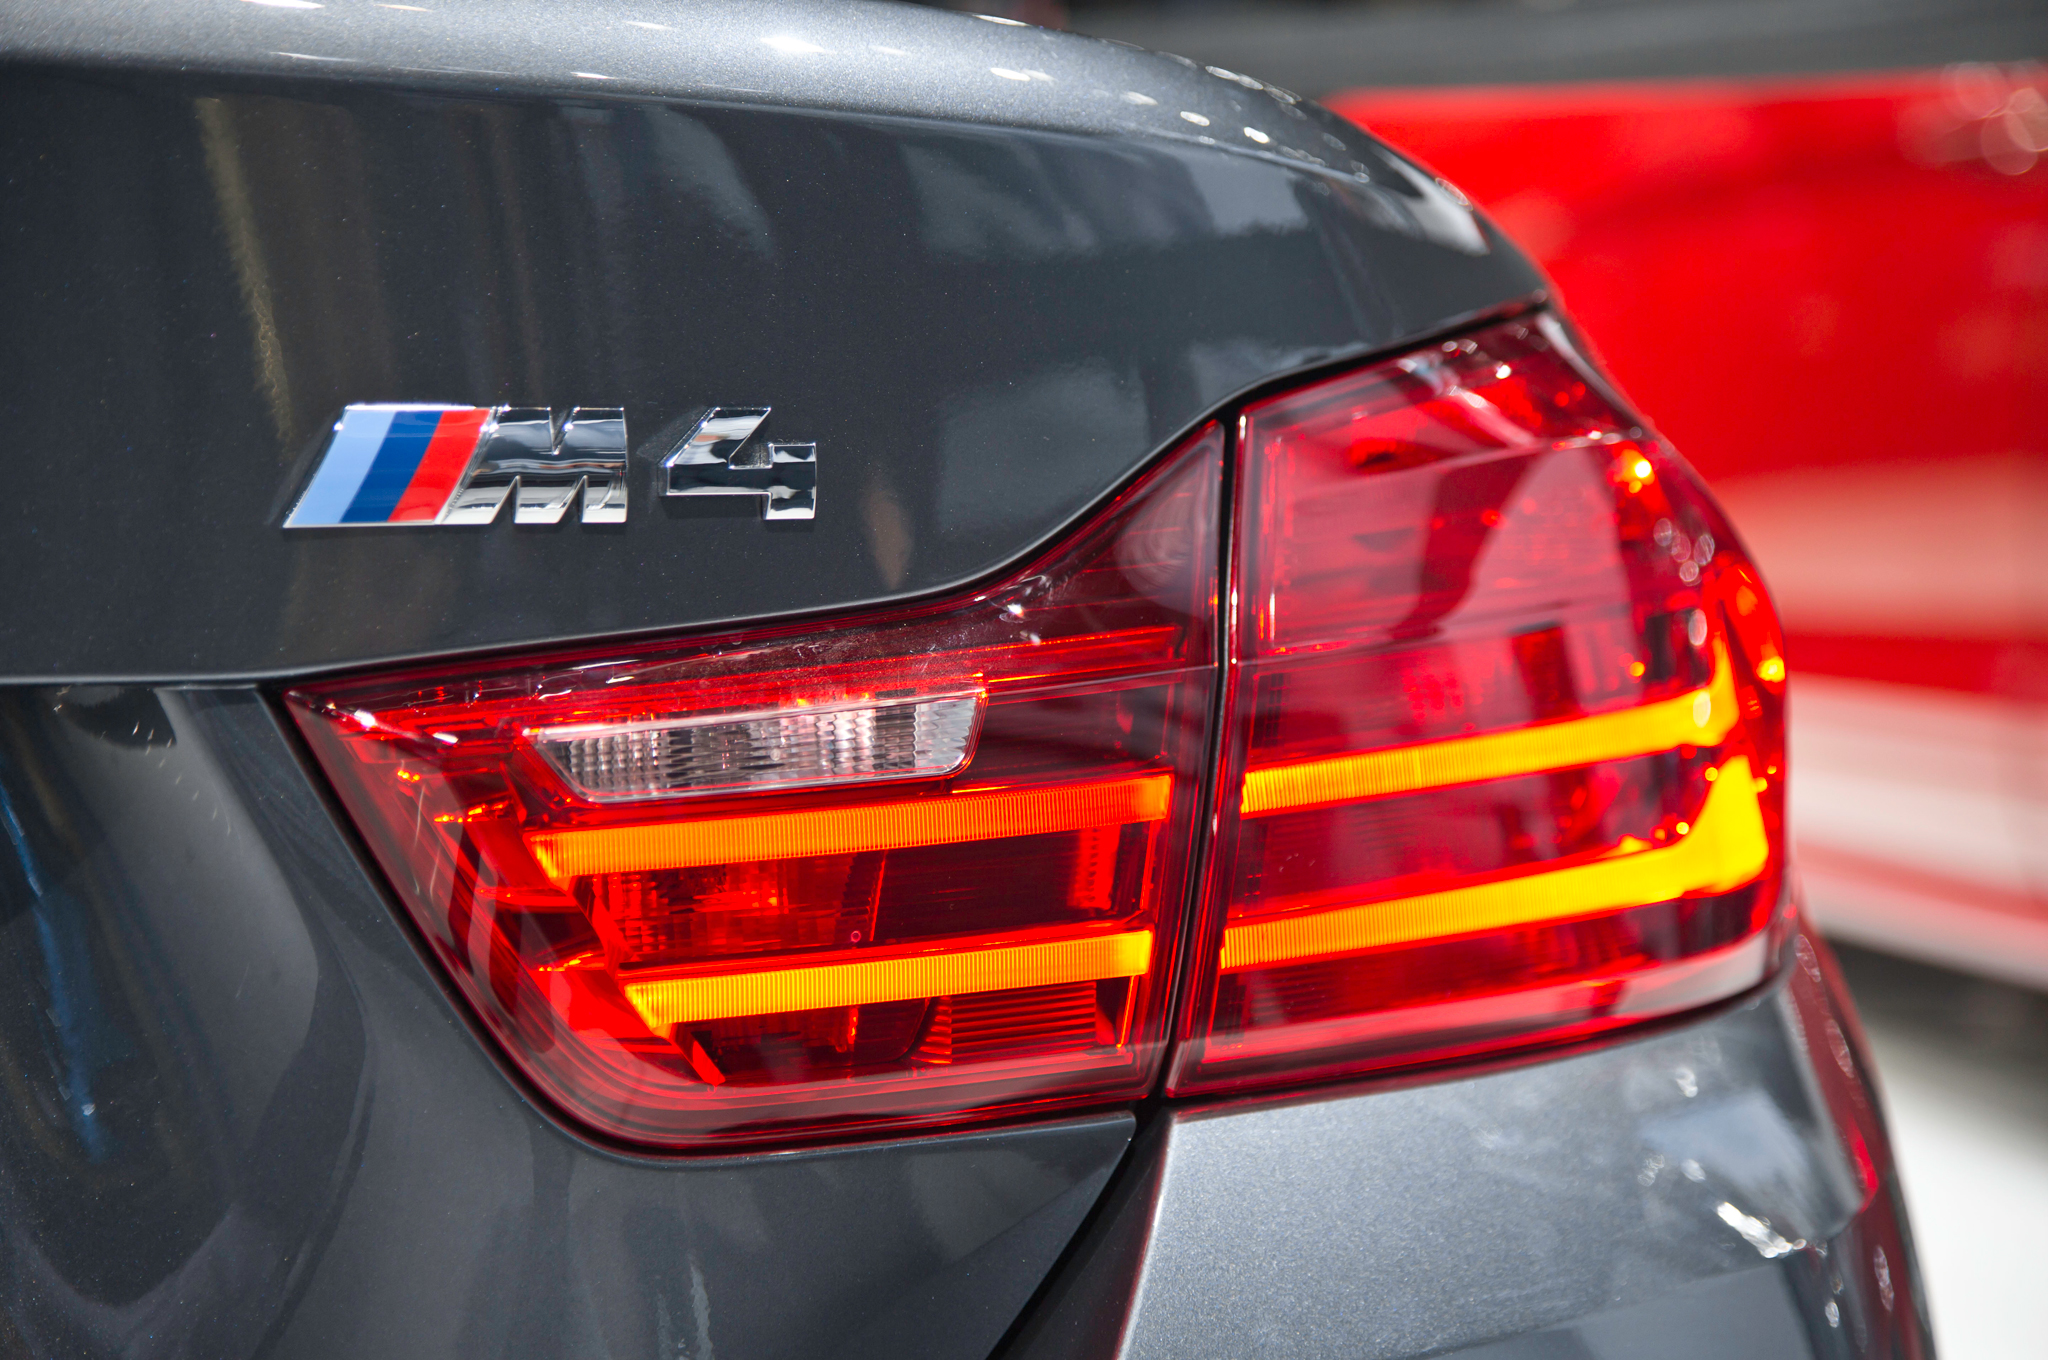 2015 Bmw M4 Convertible Rear Taillight (View 14 of 50)